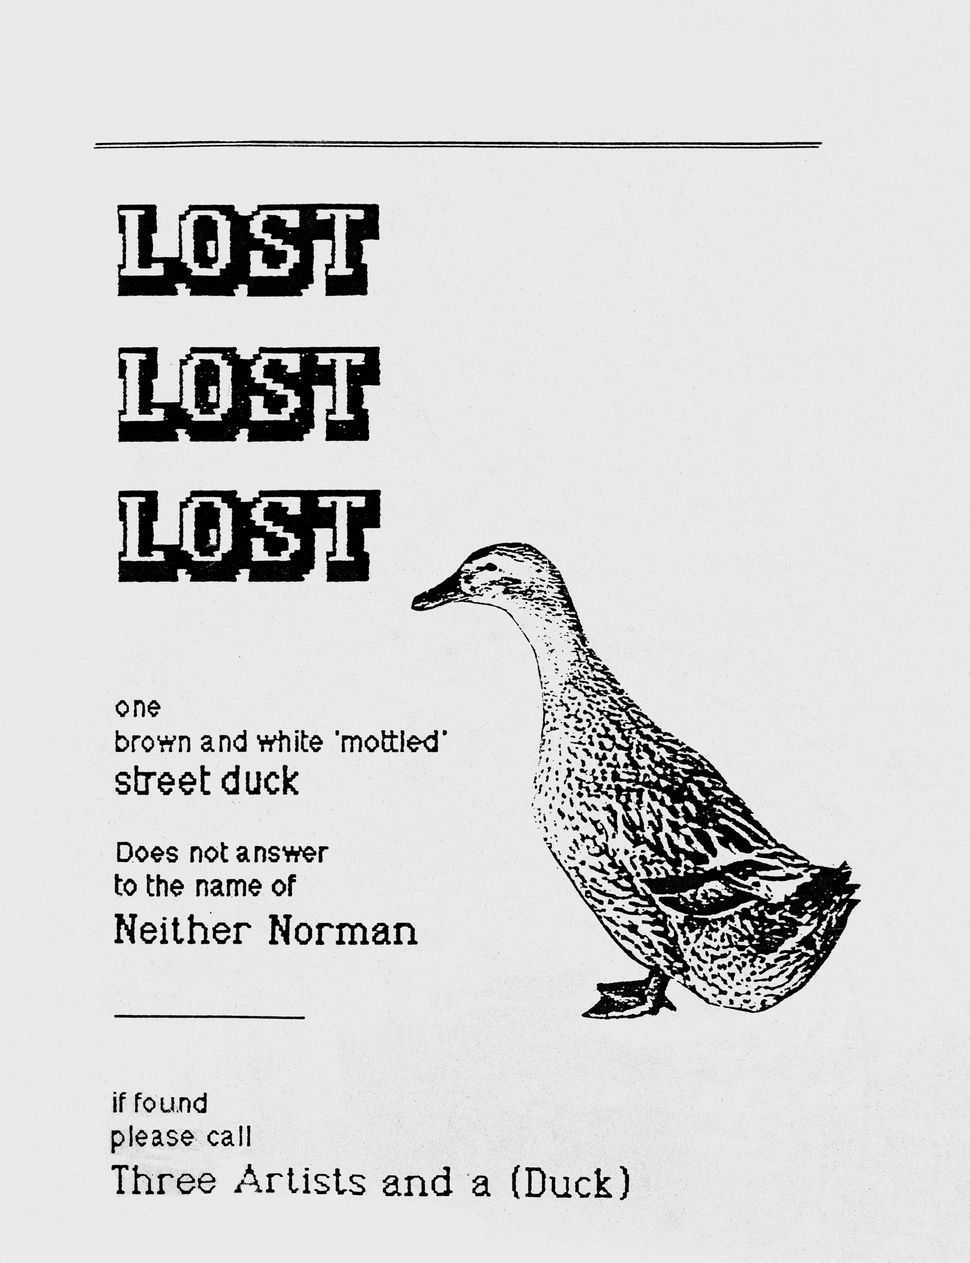 Lost: Lost and Found Pet Posters from Around the World by Ian Phillips. Published by Princeton Architectural Press, 2015.